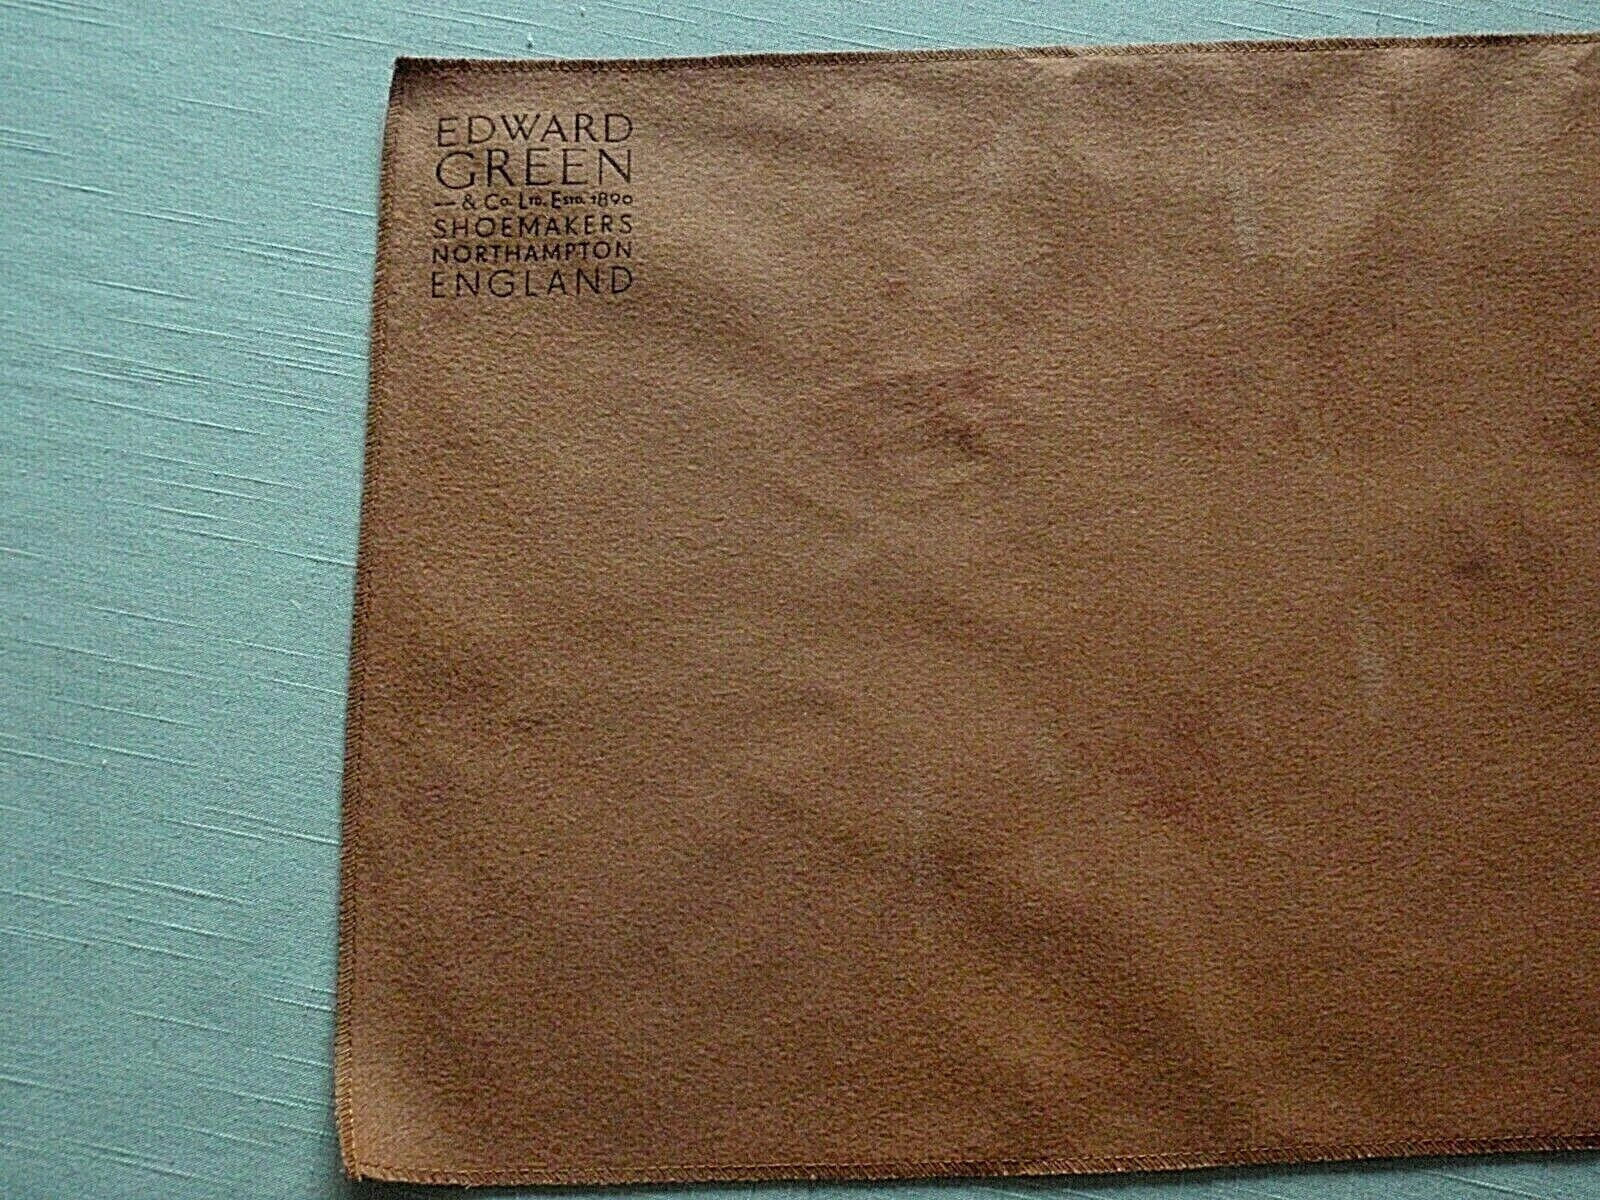 NEW EDWARD Green Brown Brushed Cotton Polishing Cloth / Dust Wrap For Shoes